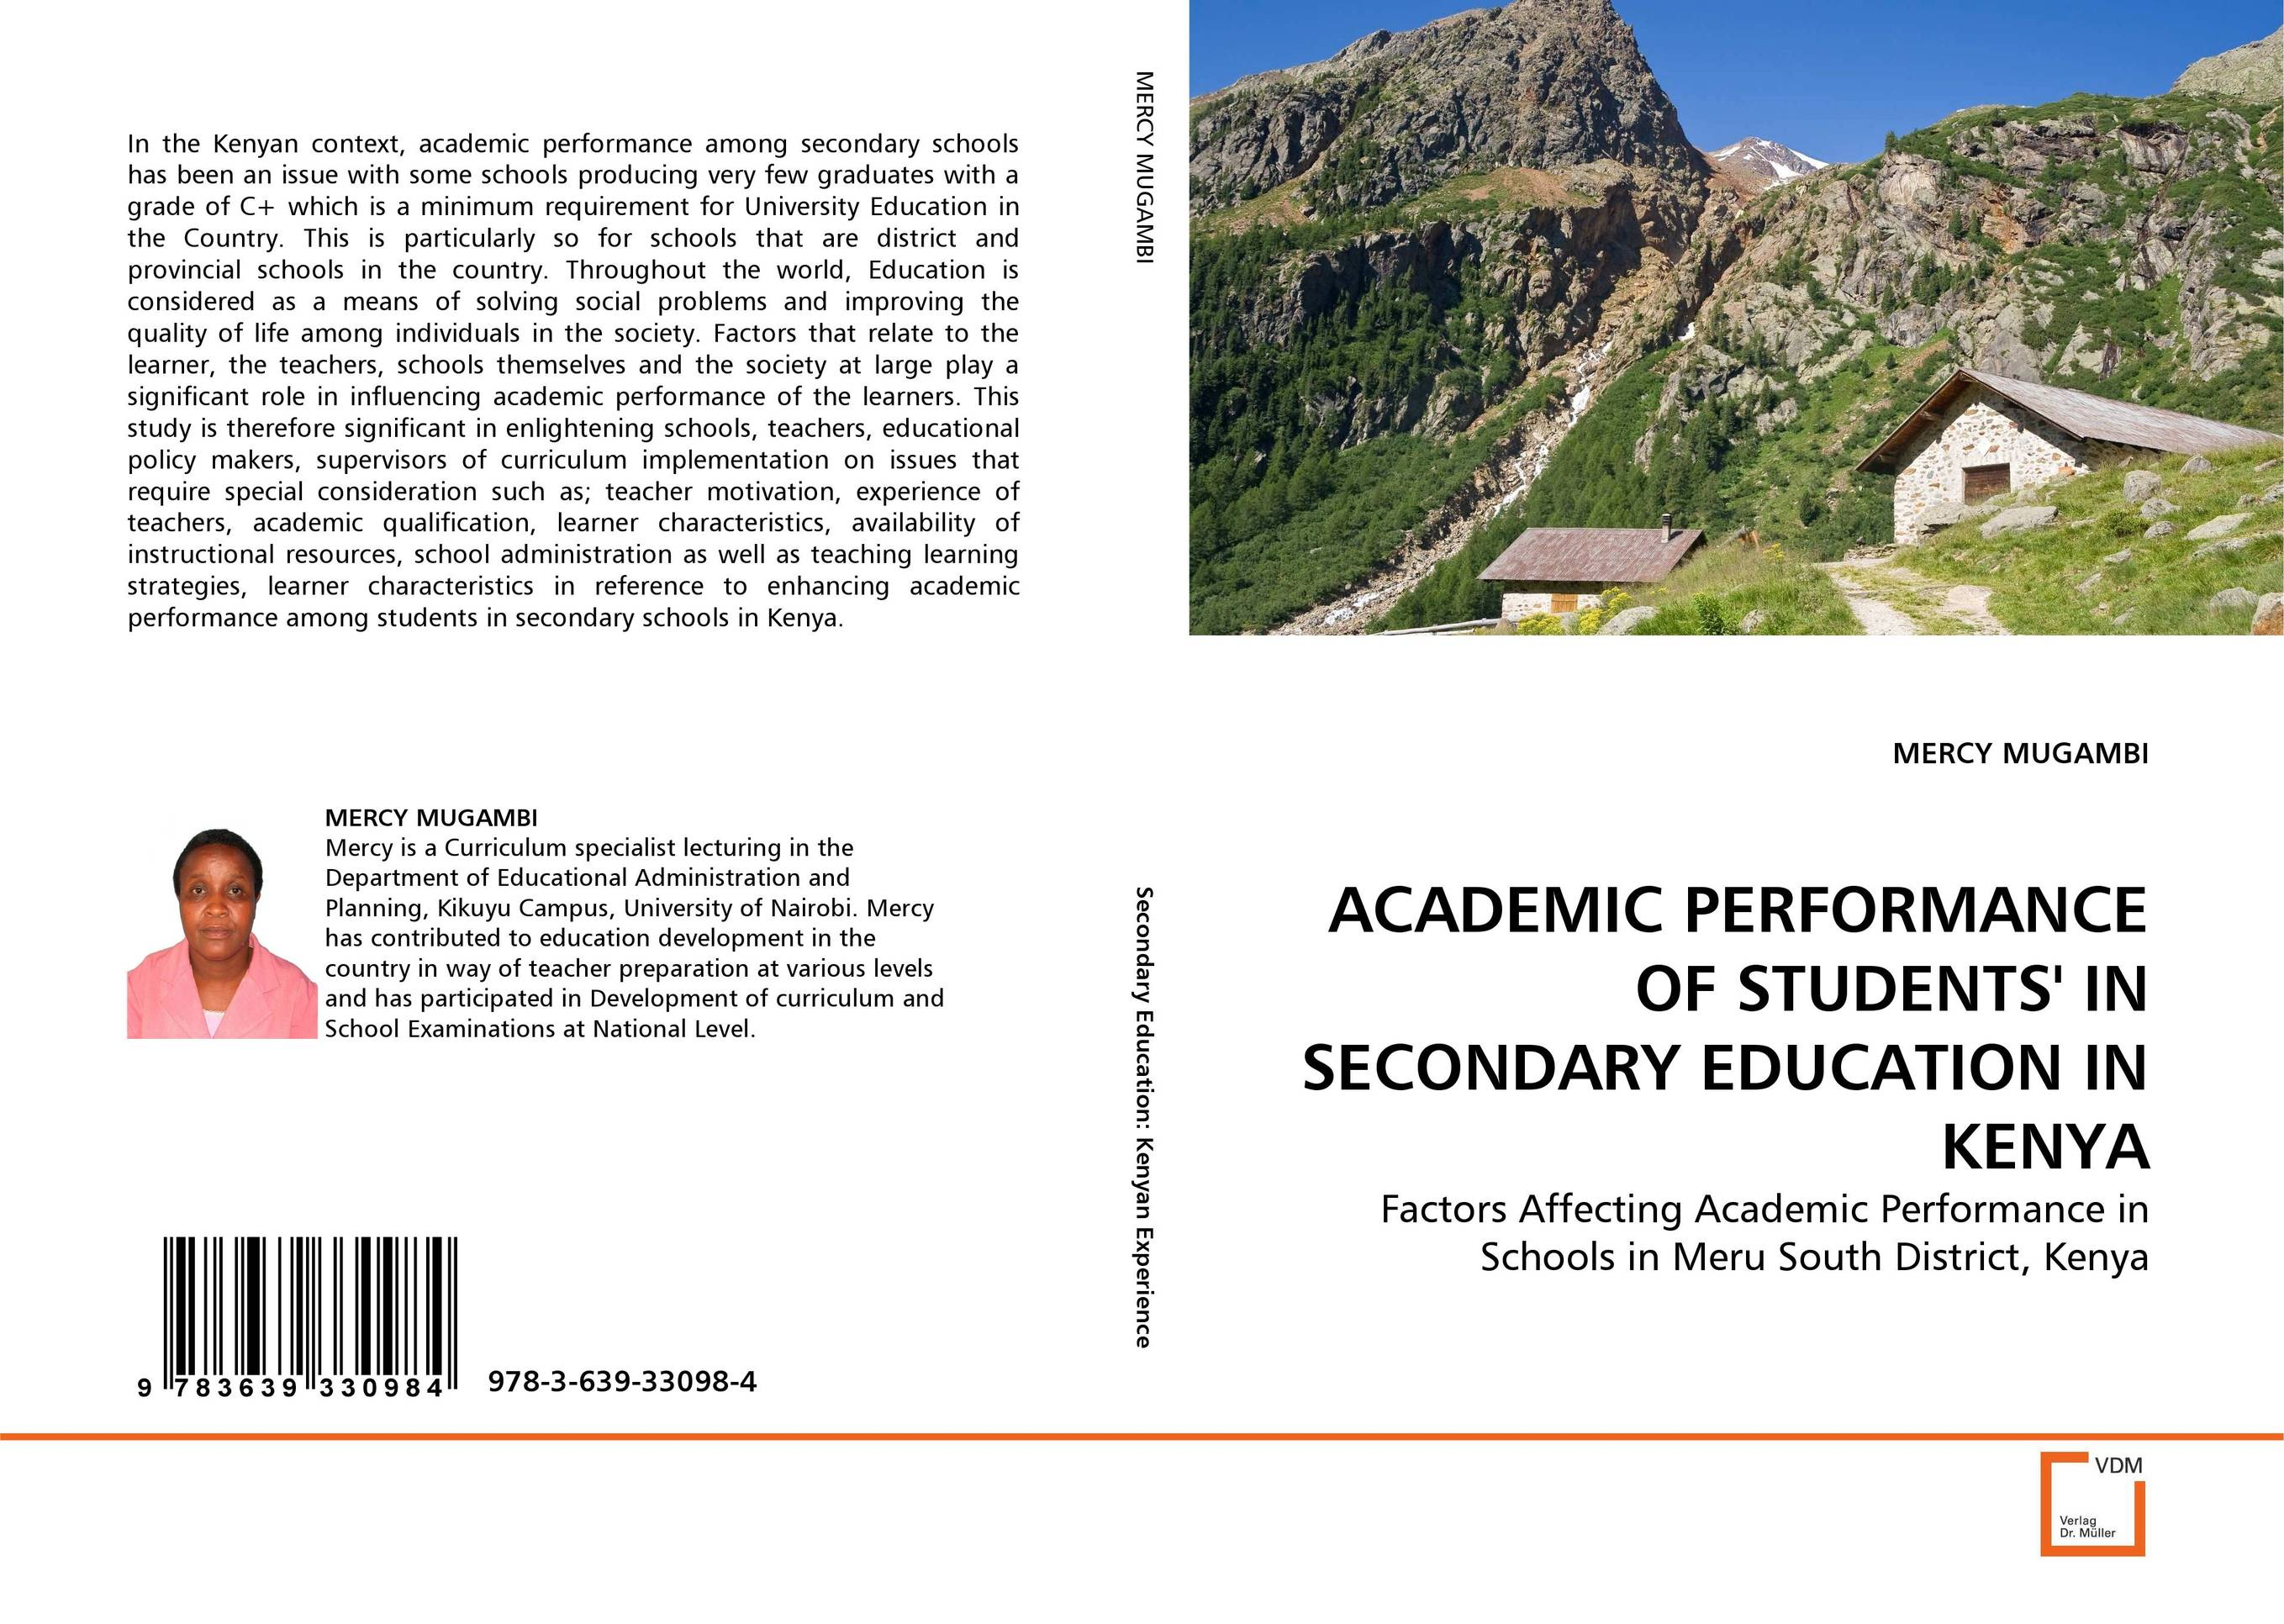 ACADEMIC PERFORMANCE OF STUDENTS'' IN SECONDARY EDUCATION IN KENYA leadership and performance in public secondary schools in kenya